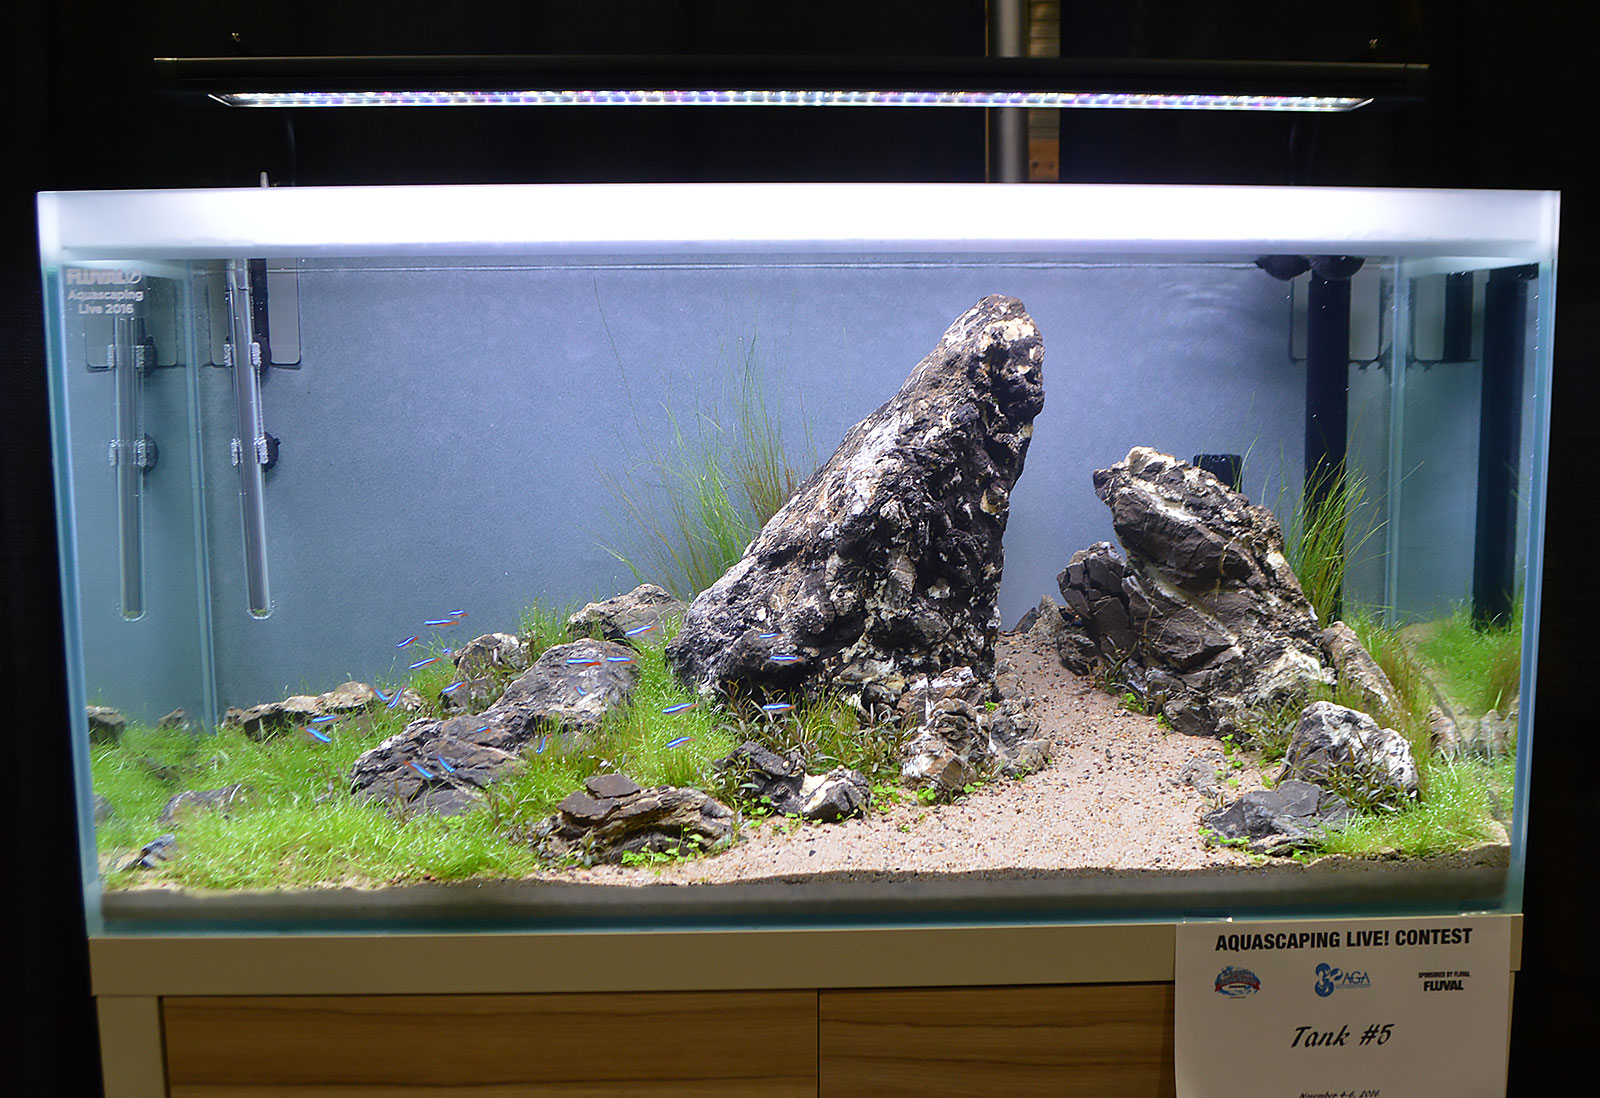 Fish tank water cloudy - Aga Aquascaping Live 2016 Entry 5 Second Place Award Winner